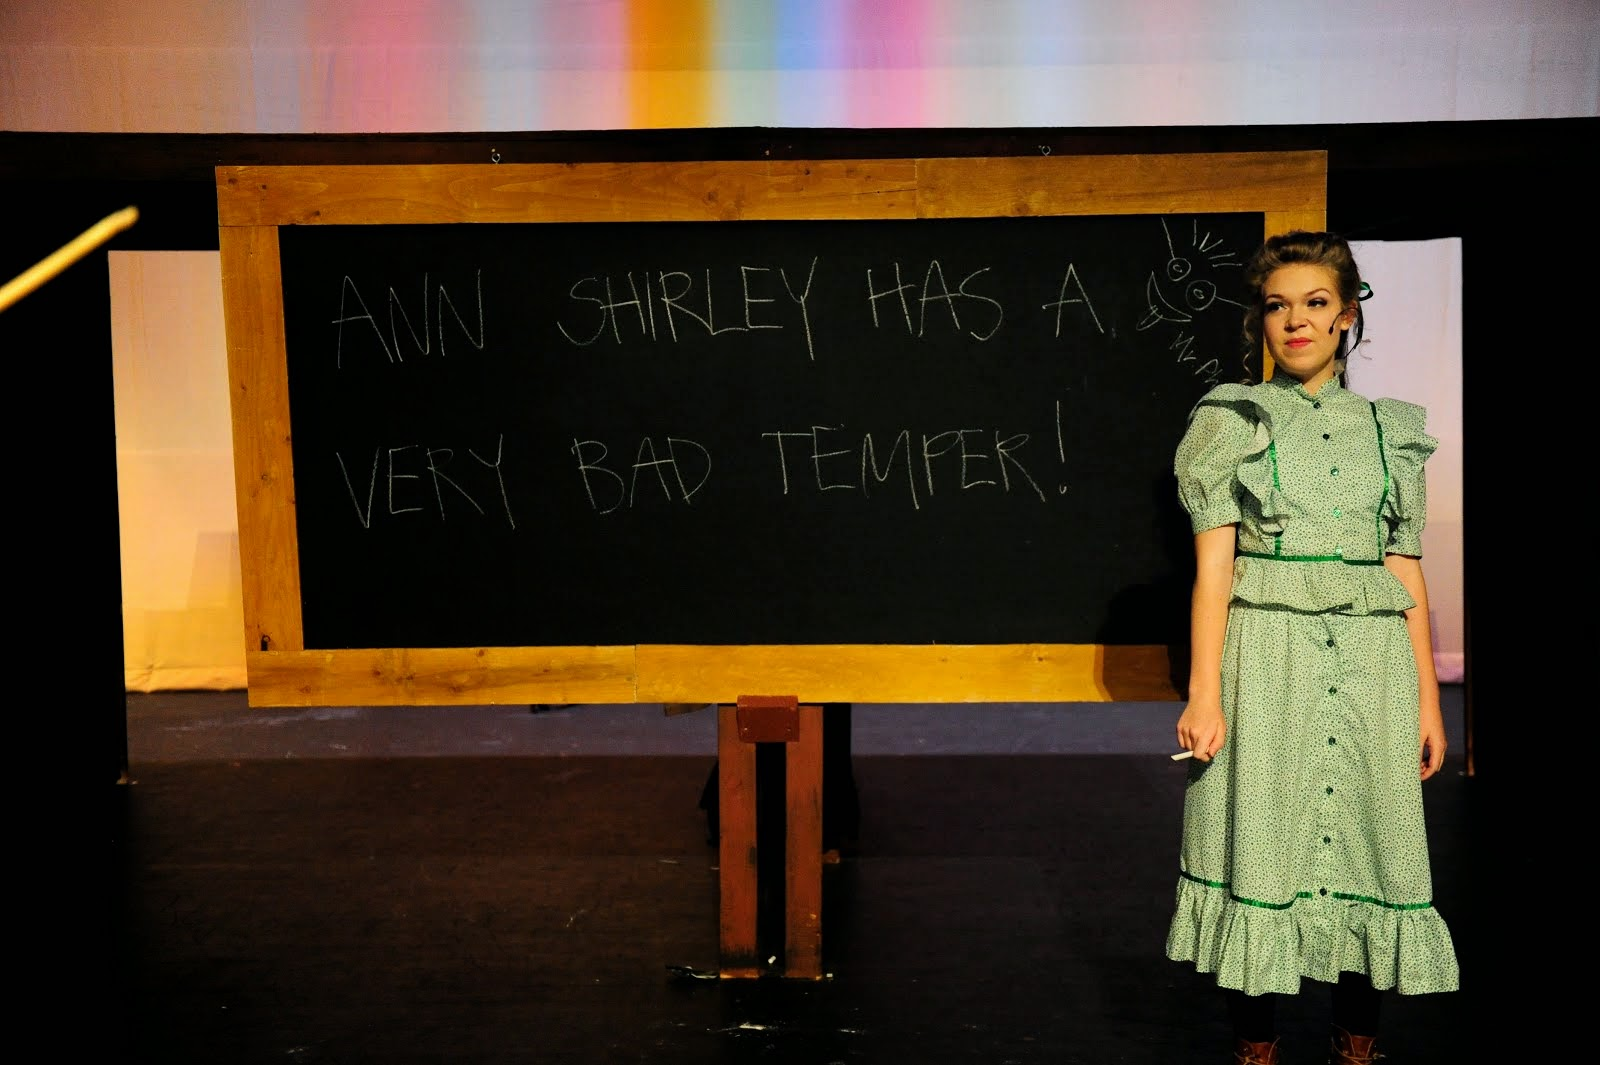 Anne Shirley has a very bad temper!